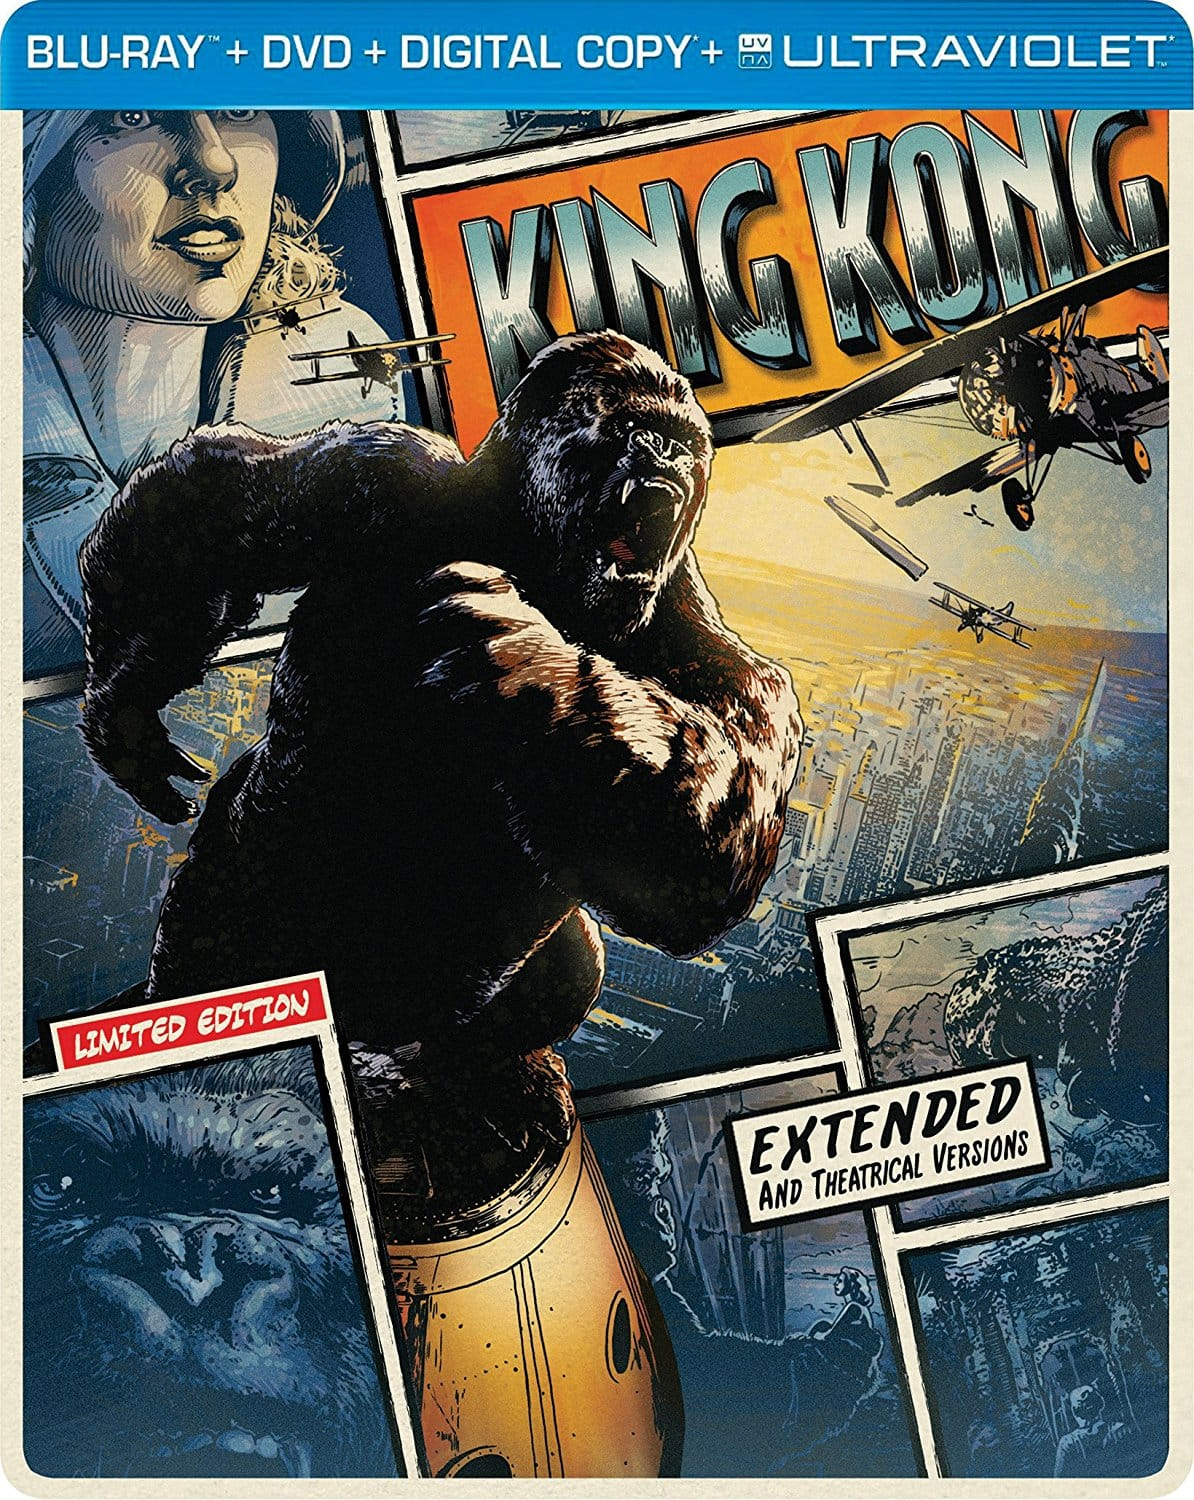 King Kong Limited Edition Steelbook (Blu-ray+Dvd+Digital+Ultraviolet) $8 @Amazon